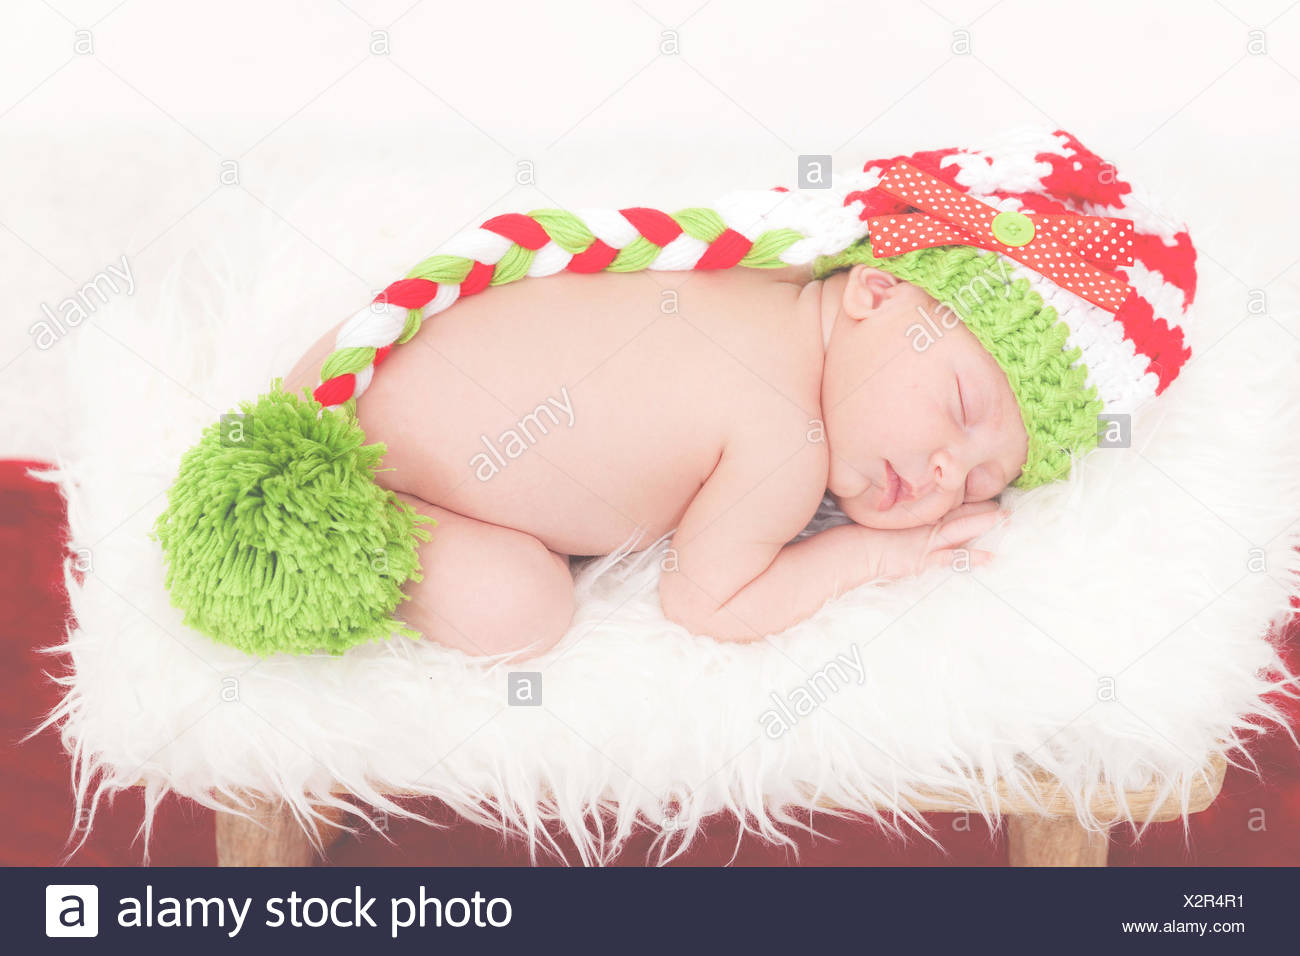 sleeping elf stock photos sleeping elf stock images alamy